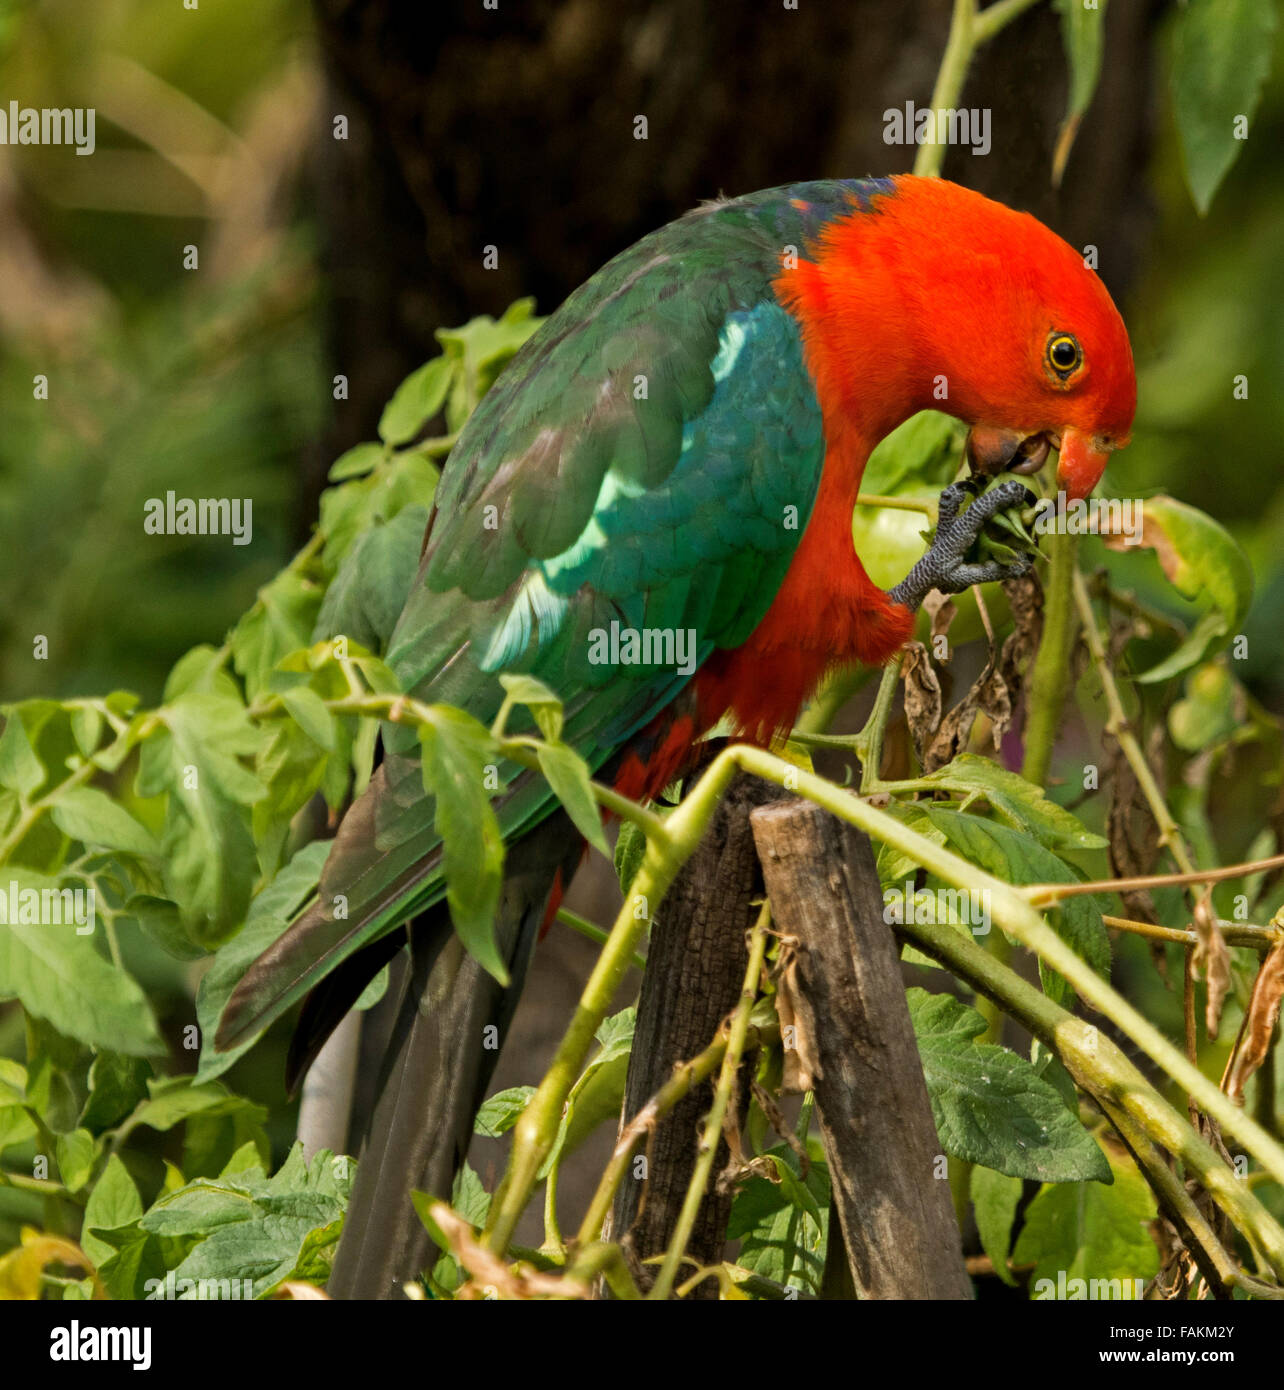 Spectacular vivid red and green male king parrot Alisterus scapularis eating green tomato in home garden in Australia - Stock Image